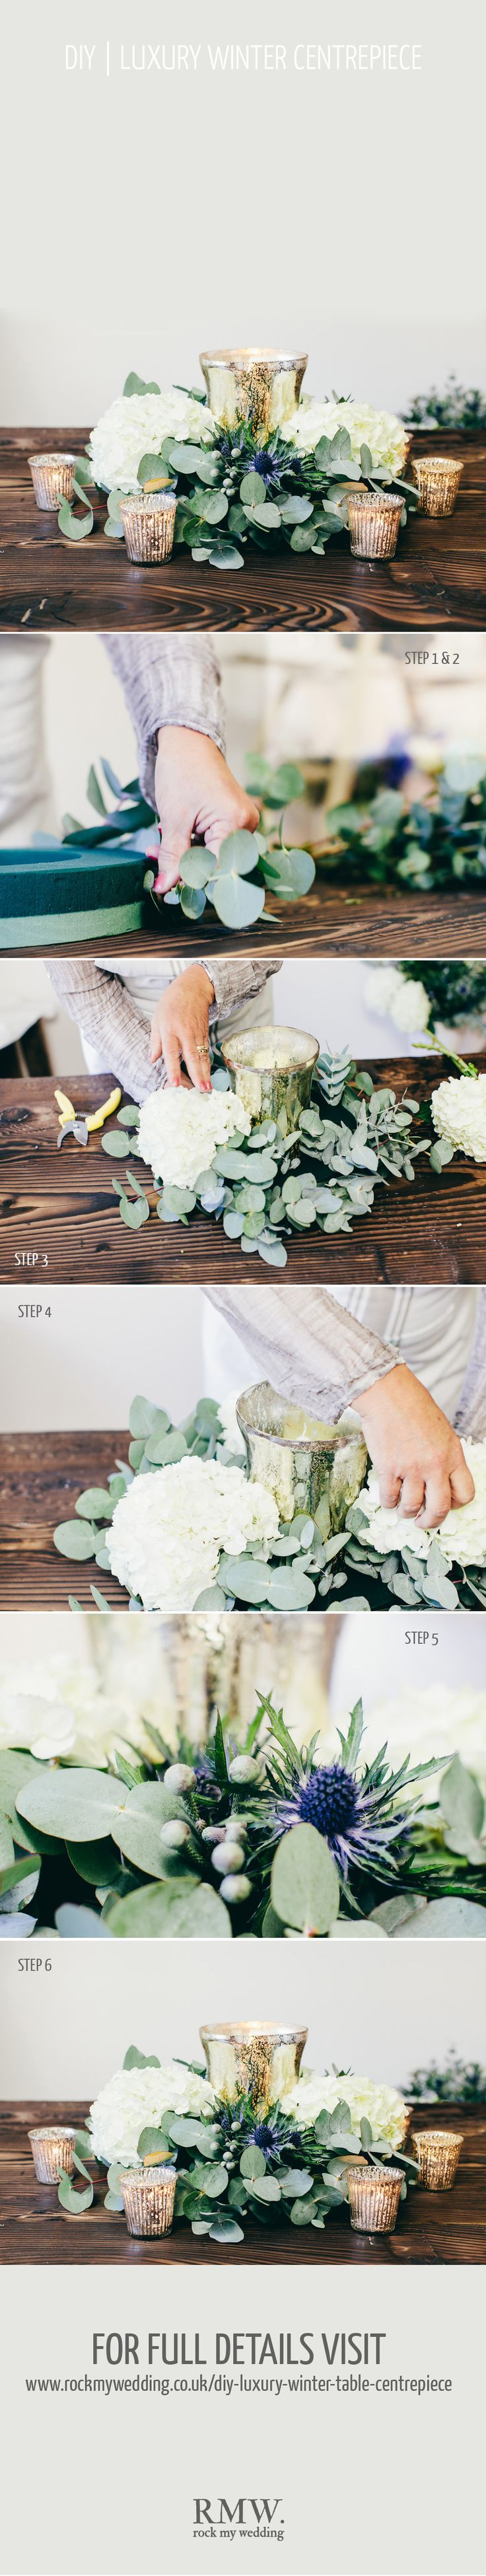 812 best wedding show images on pinterest marriage flowers and a floral diy tutorial showing you how to create a luxury winter table centrepiece fake flower centerpieceswedding centerpieces cheapround izmirmasajfo